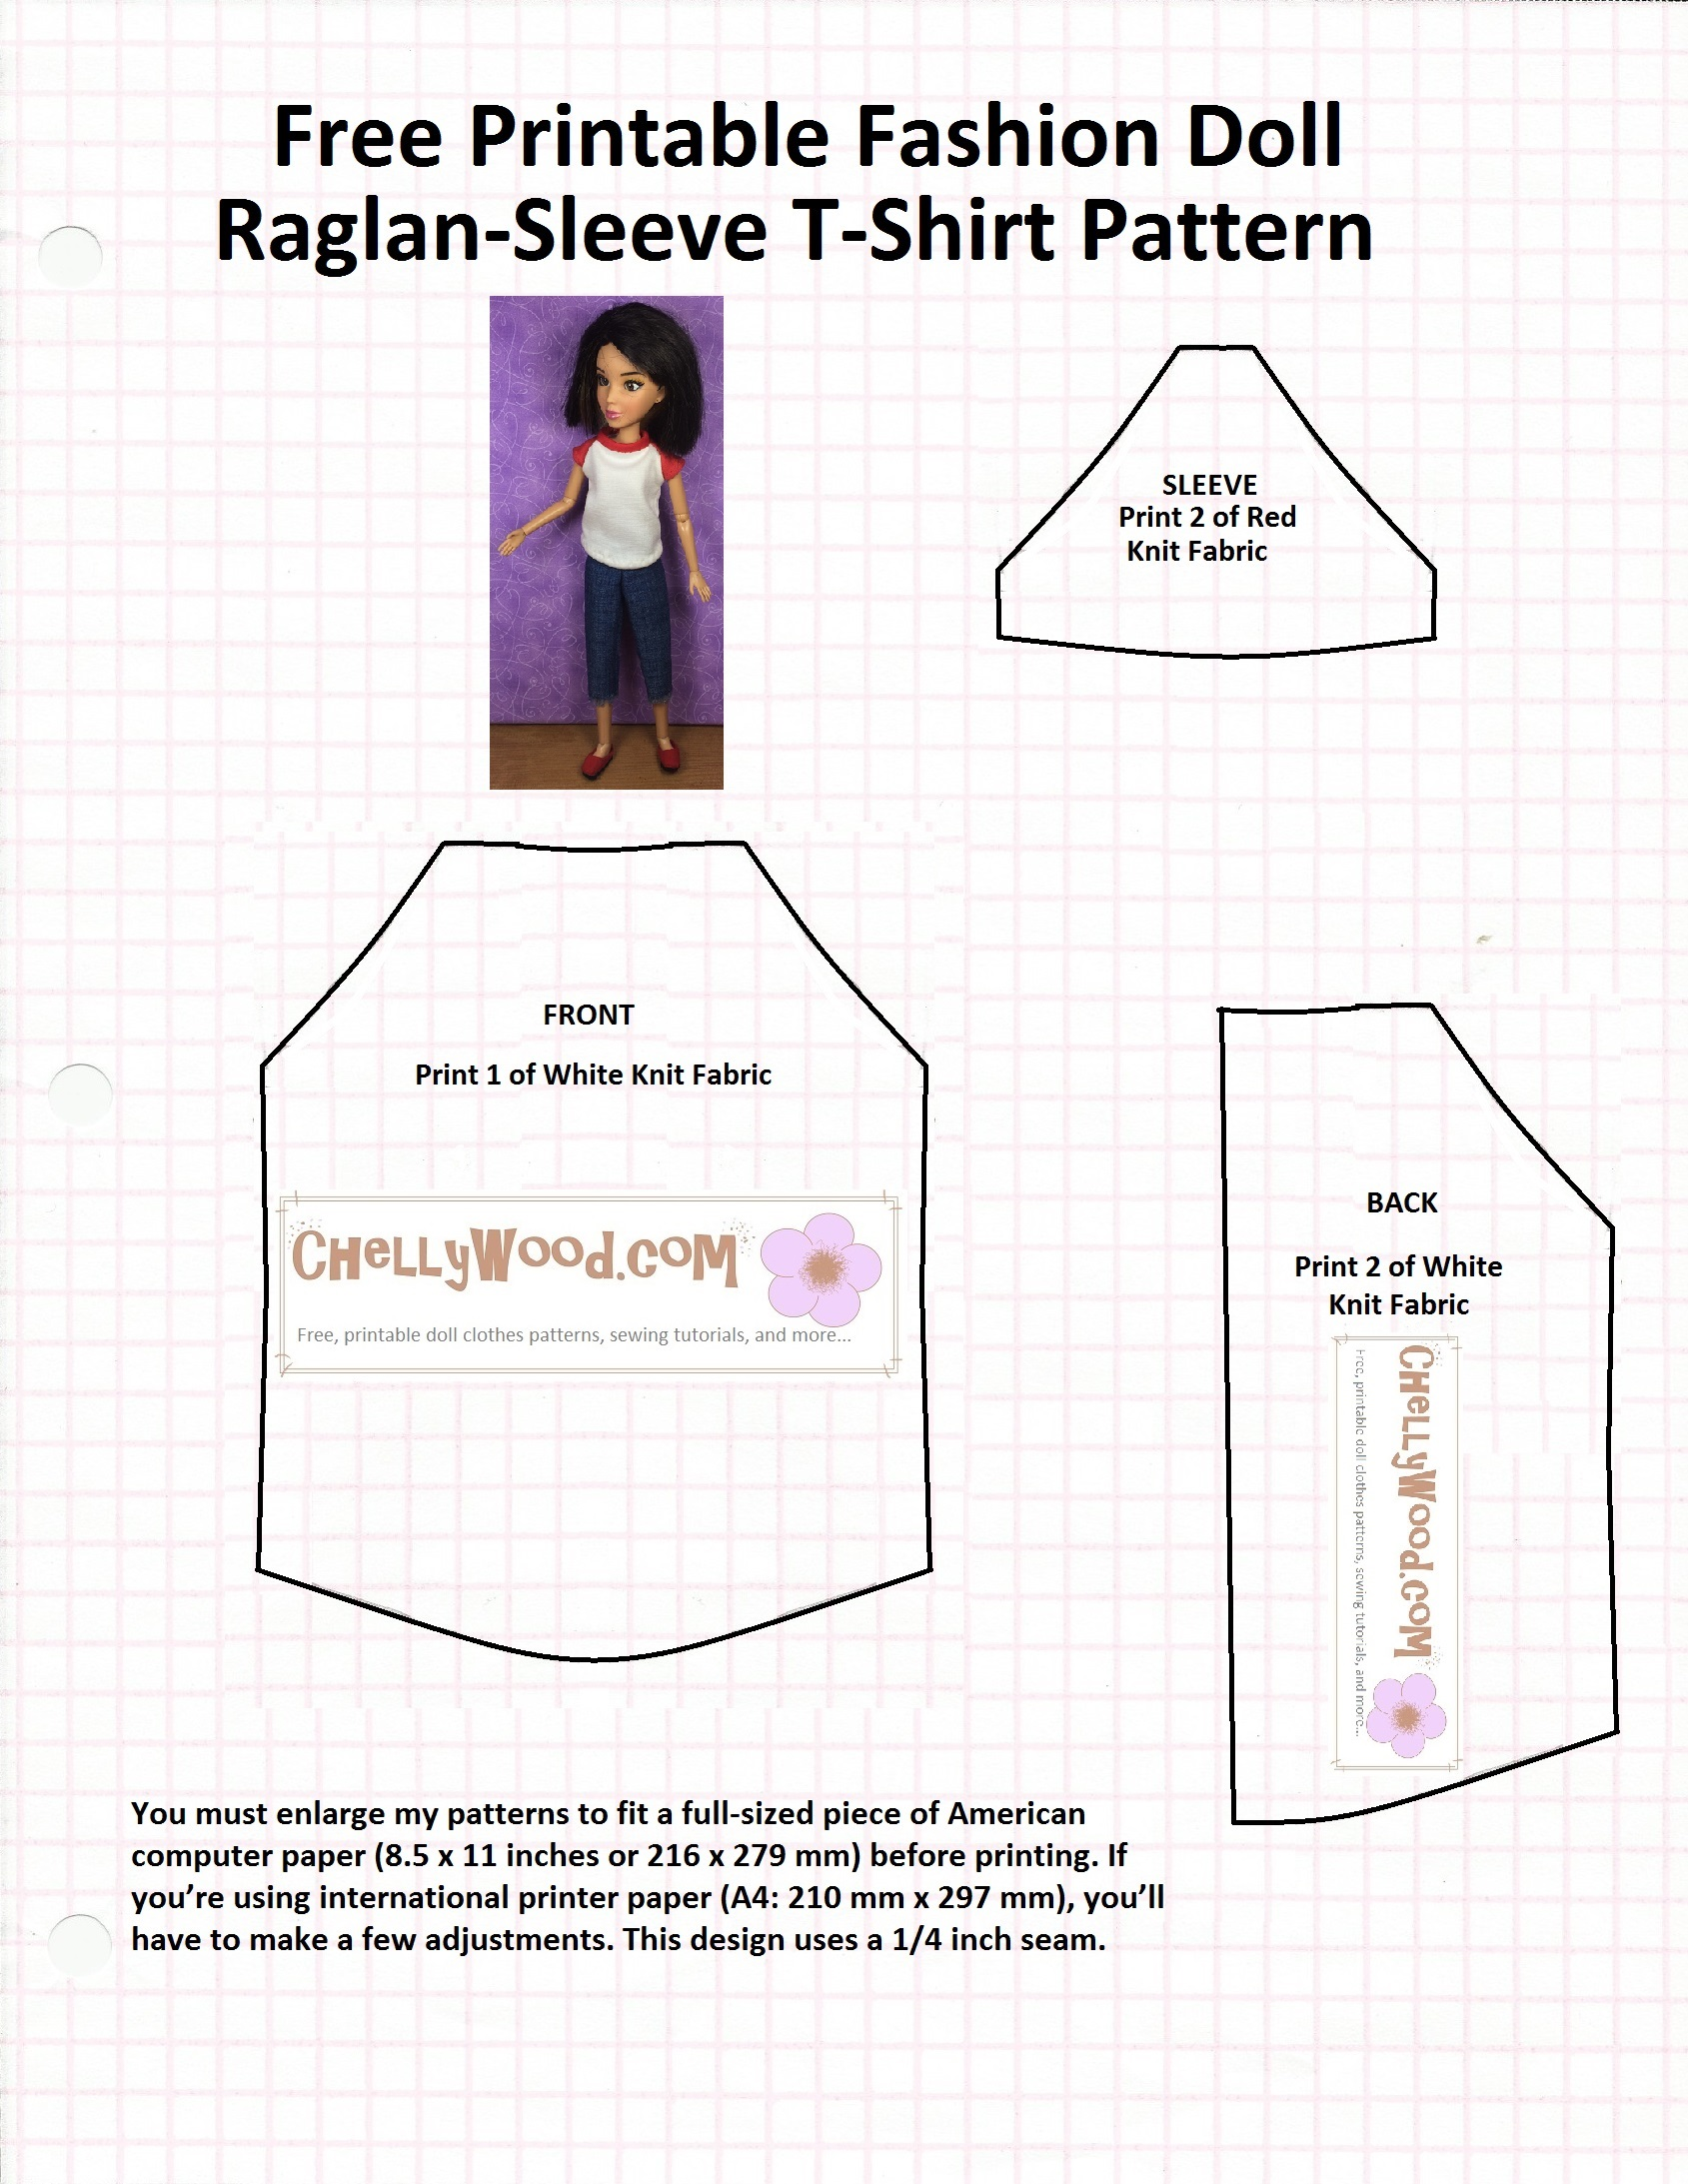 Sew outfits for fashion dolls w free sewing patterns free raglan sleeved shirt pattern for female fashion dolls jeuxipadfo Gallery